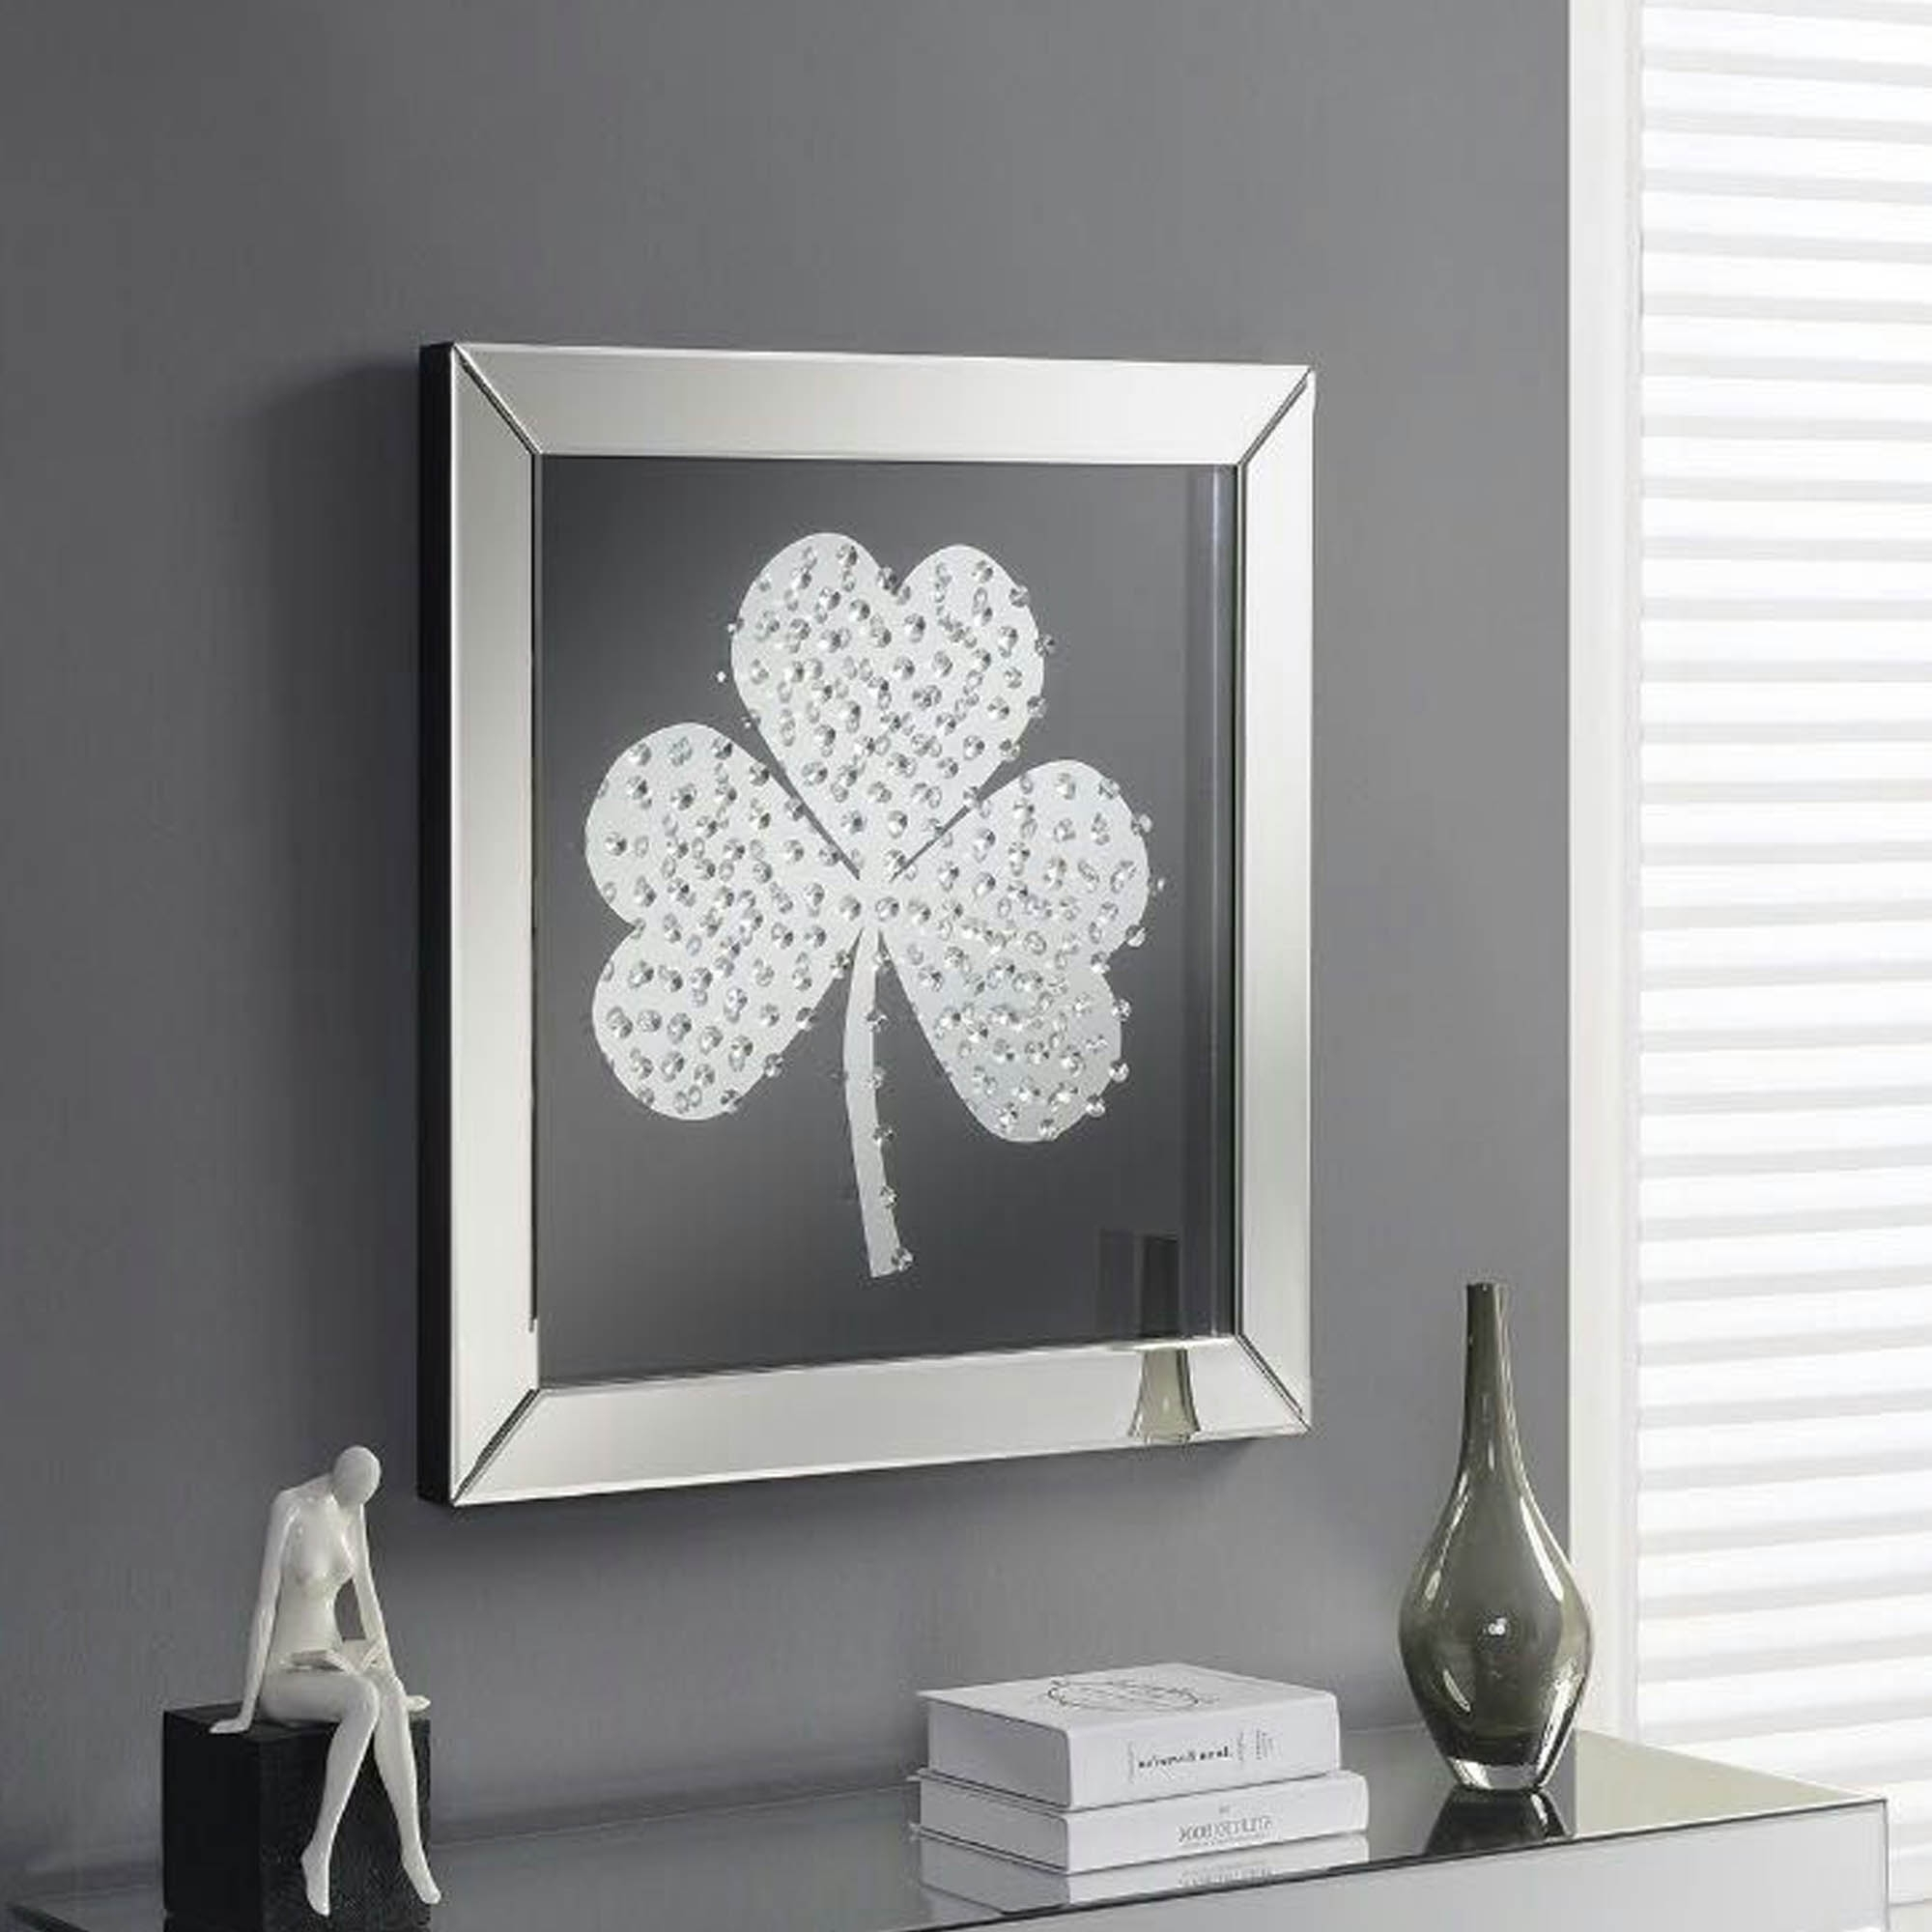 Widely Used Mirrored Wall Art Regarding Shamrock Mirrored Wall Art (View 19 of 20)